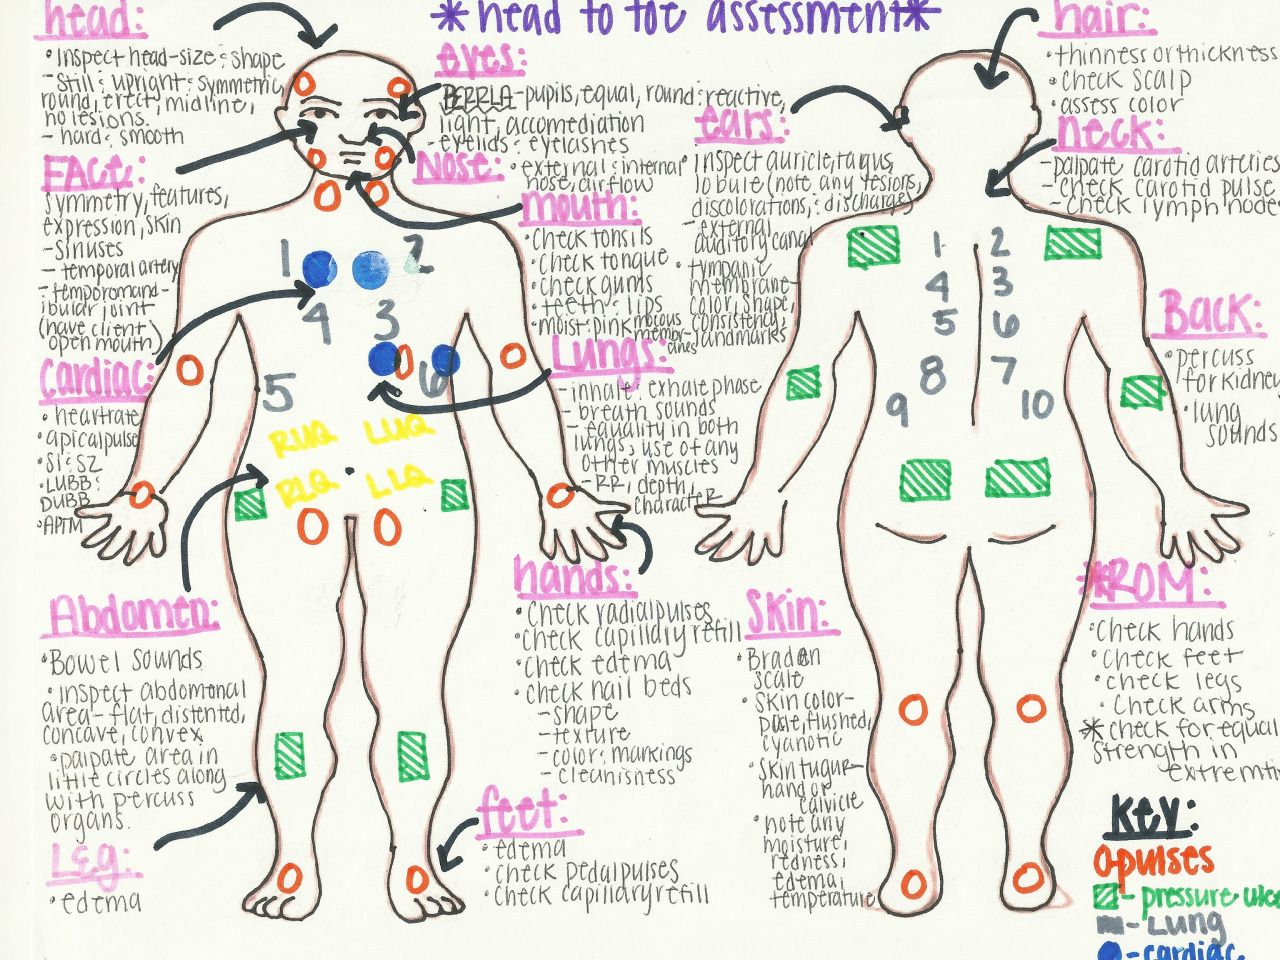 "artsciencenursing: head to toe assessment ""cheat sheet"" source"